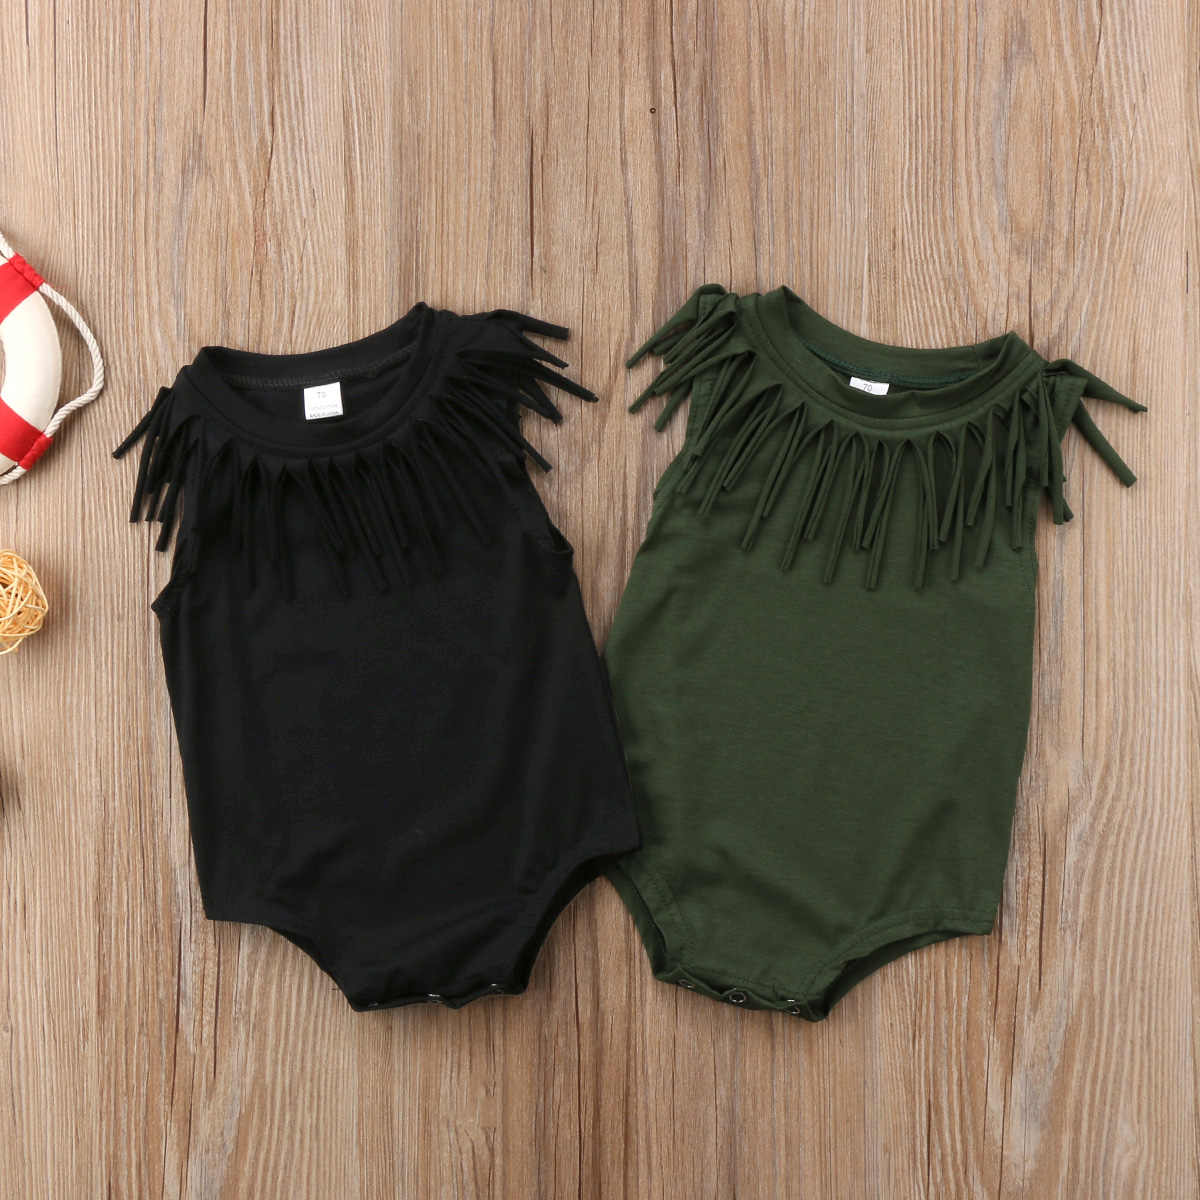 5bf4bd68258 Detail Feedback Questions about 2018 Baby Girls Boy Cute Sleeveless Toddler  Black Green Tassel Clothes Jumpsuit Bodysuit Casual Novelty Summer Outfits  on ...